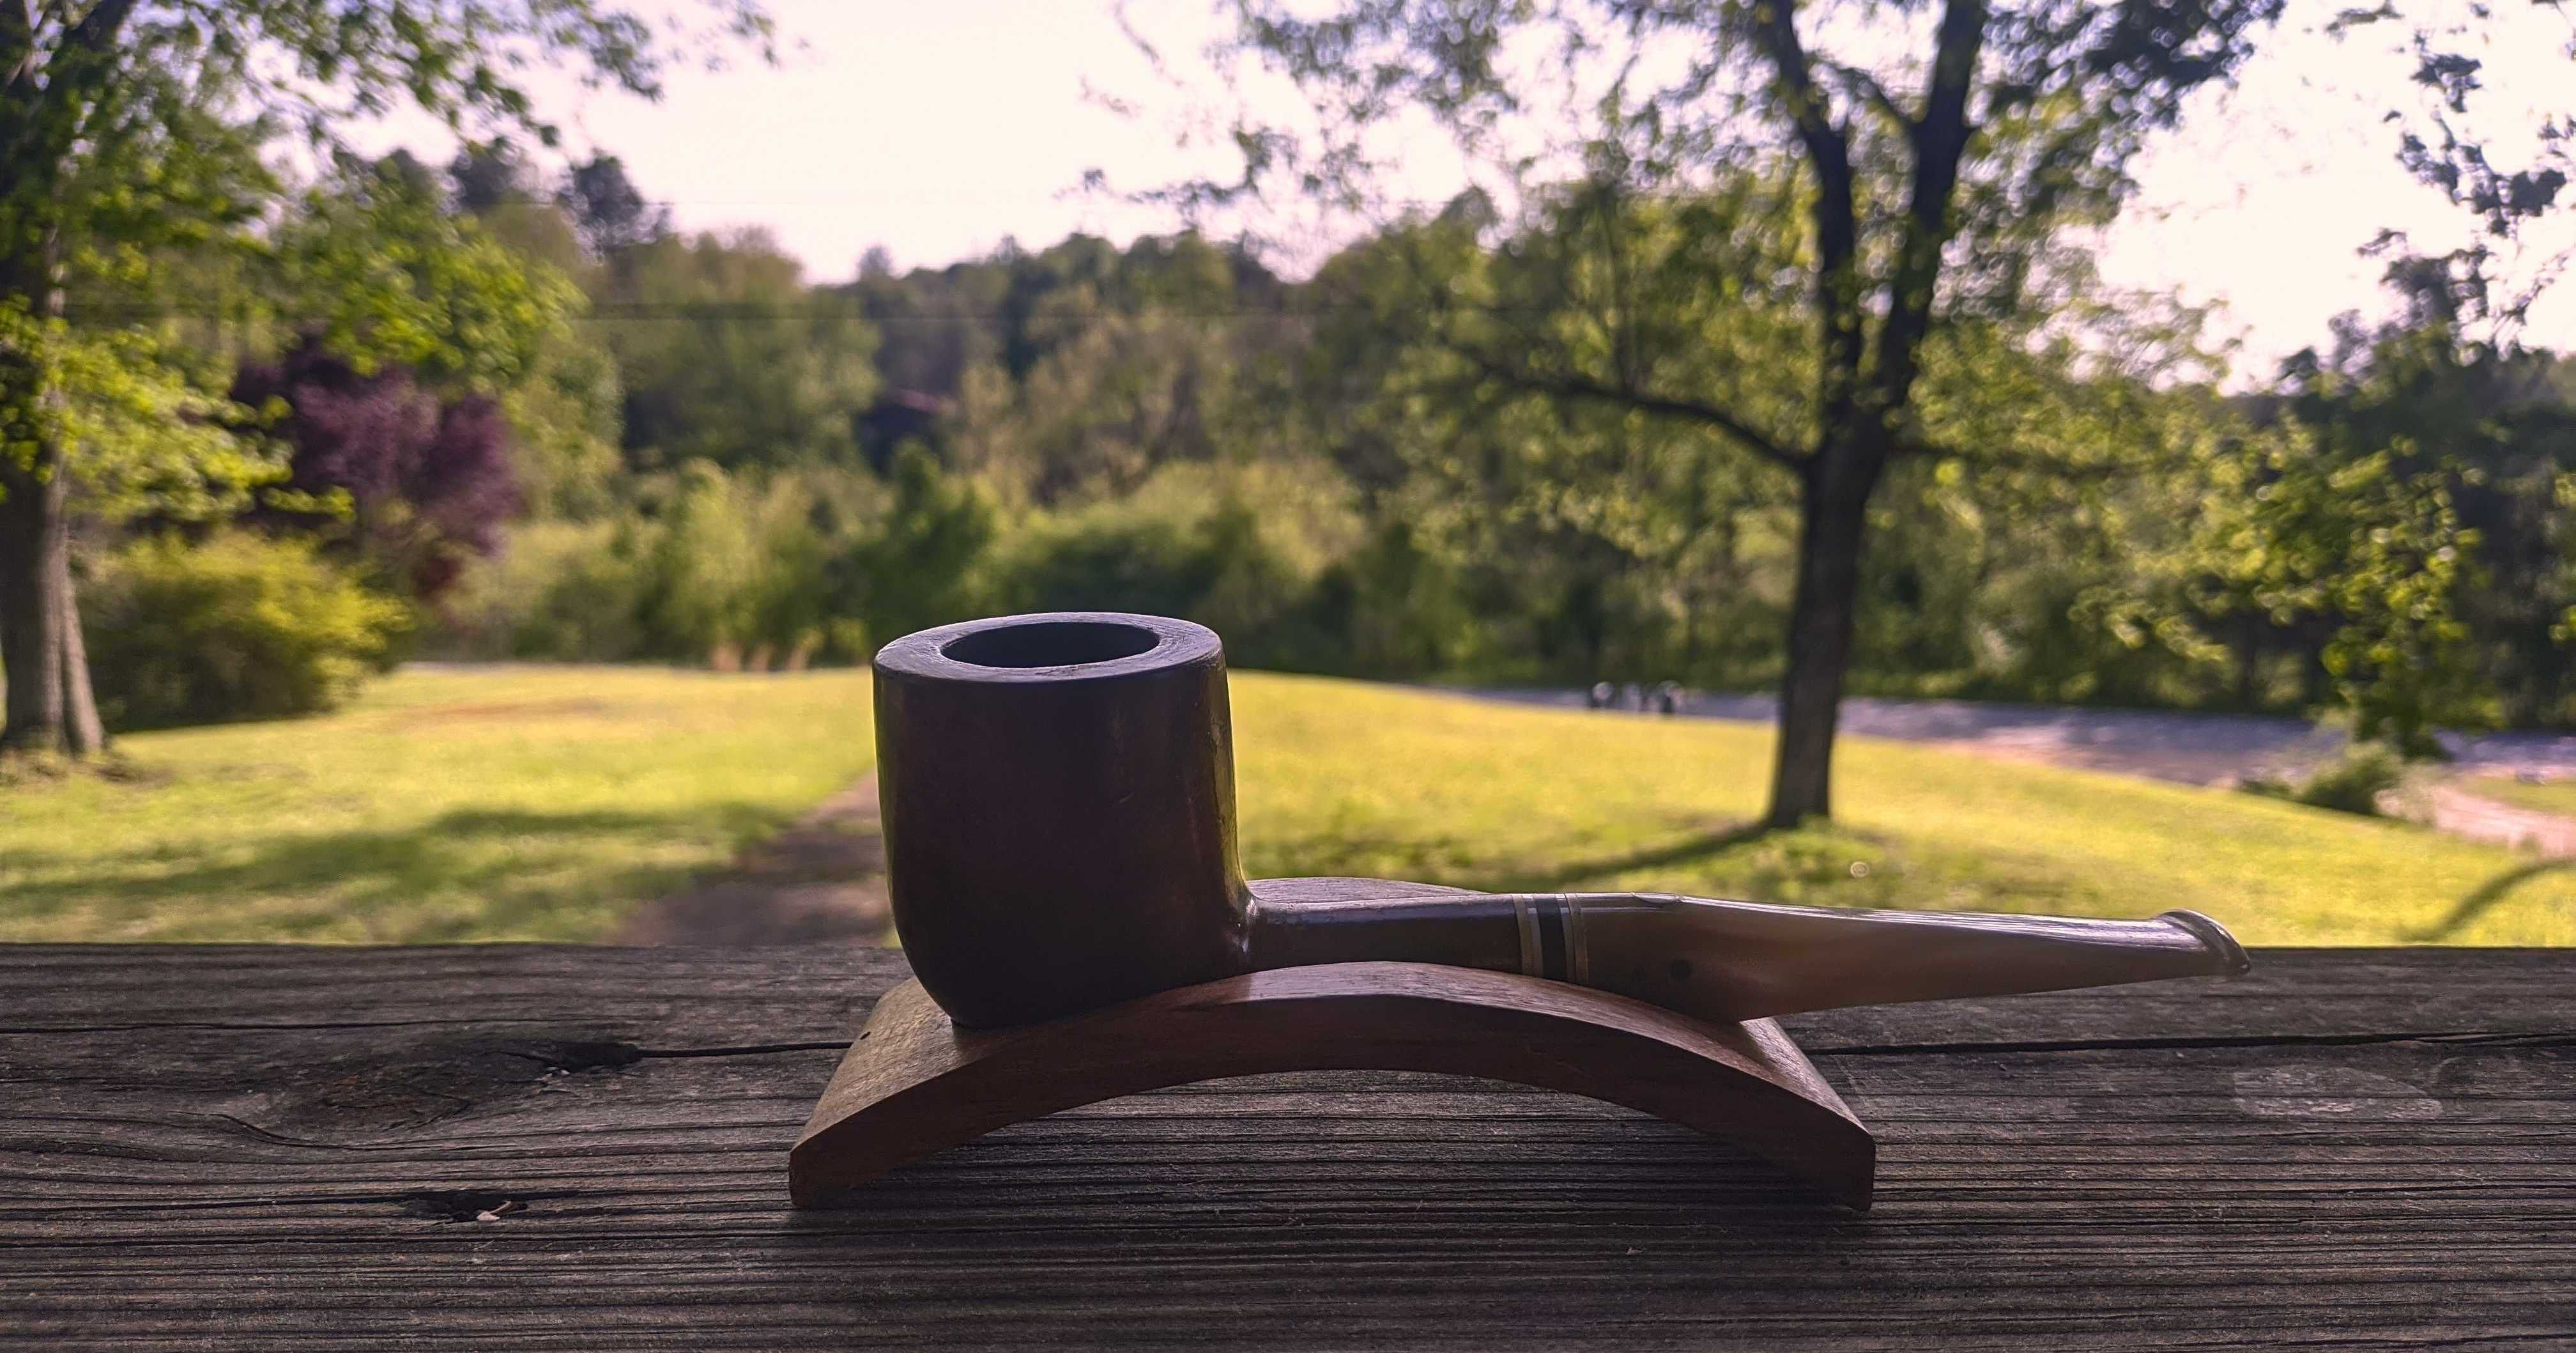 A picture of my pipe from Mauro Armellini. It's sitting on my porch rail with the yard in the background; the grass is a light green and the leaves of the woods further on are darker. The pipe is a rich brown with a cream-coloured opalescent stem. There is a mother-of-pearl inlay on top of the stem.